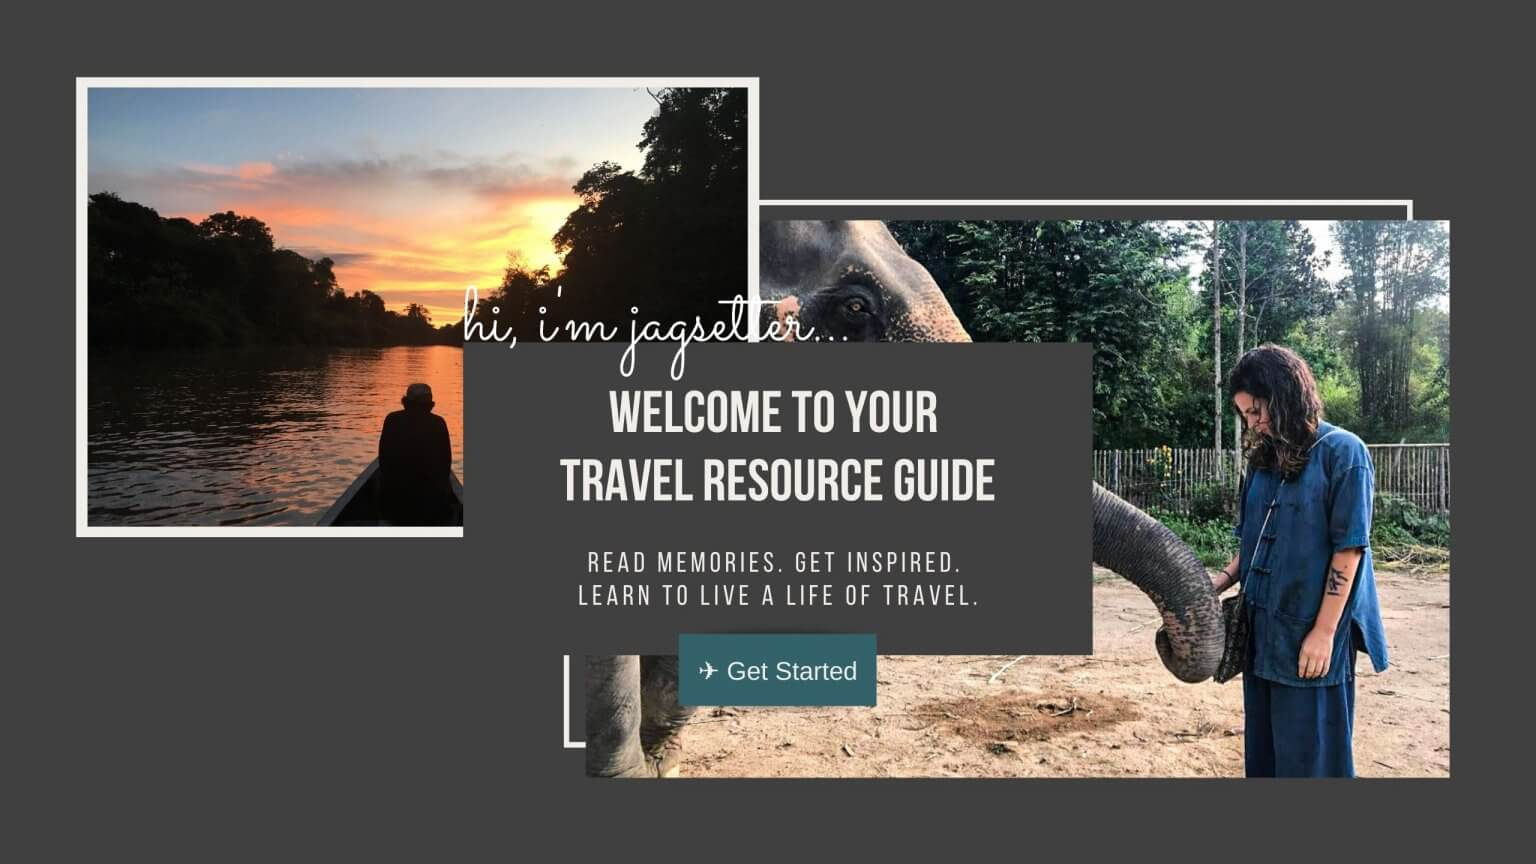 Jagsetter Travel Blog Hero Image. Picture of girl with elephant in Thailand and another picture of a man in a boat in the Peruvian Amazon.